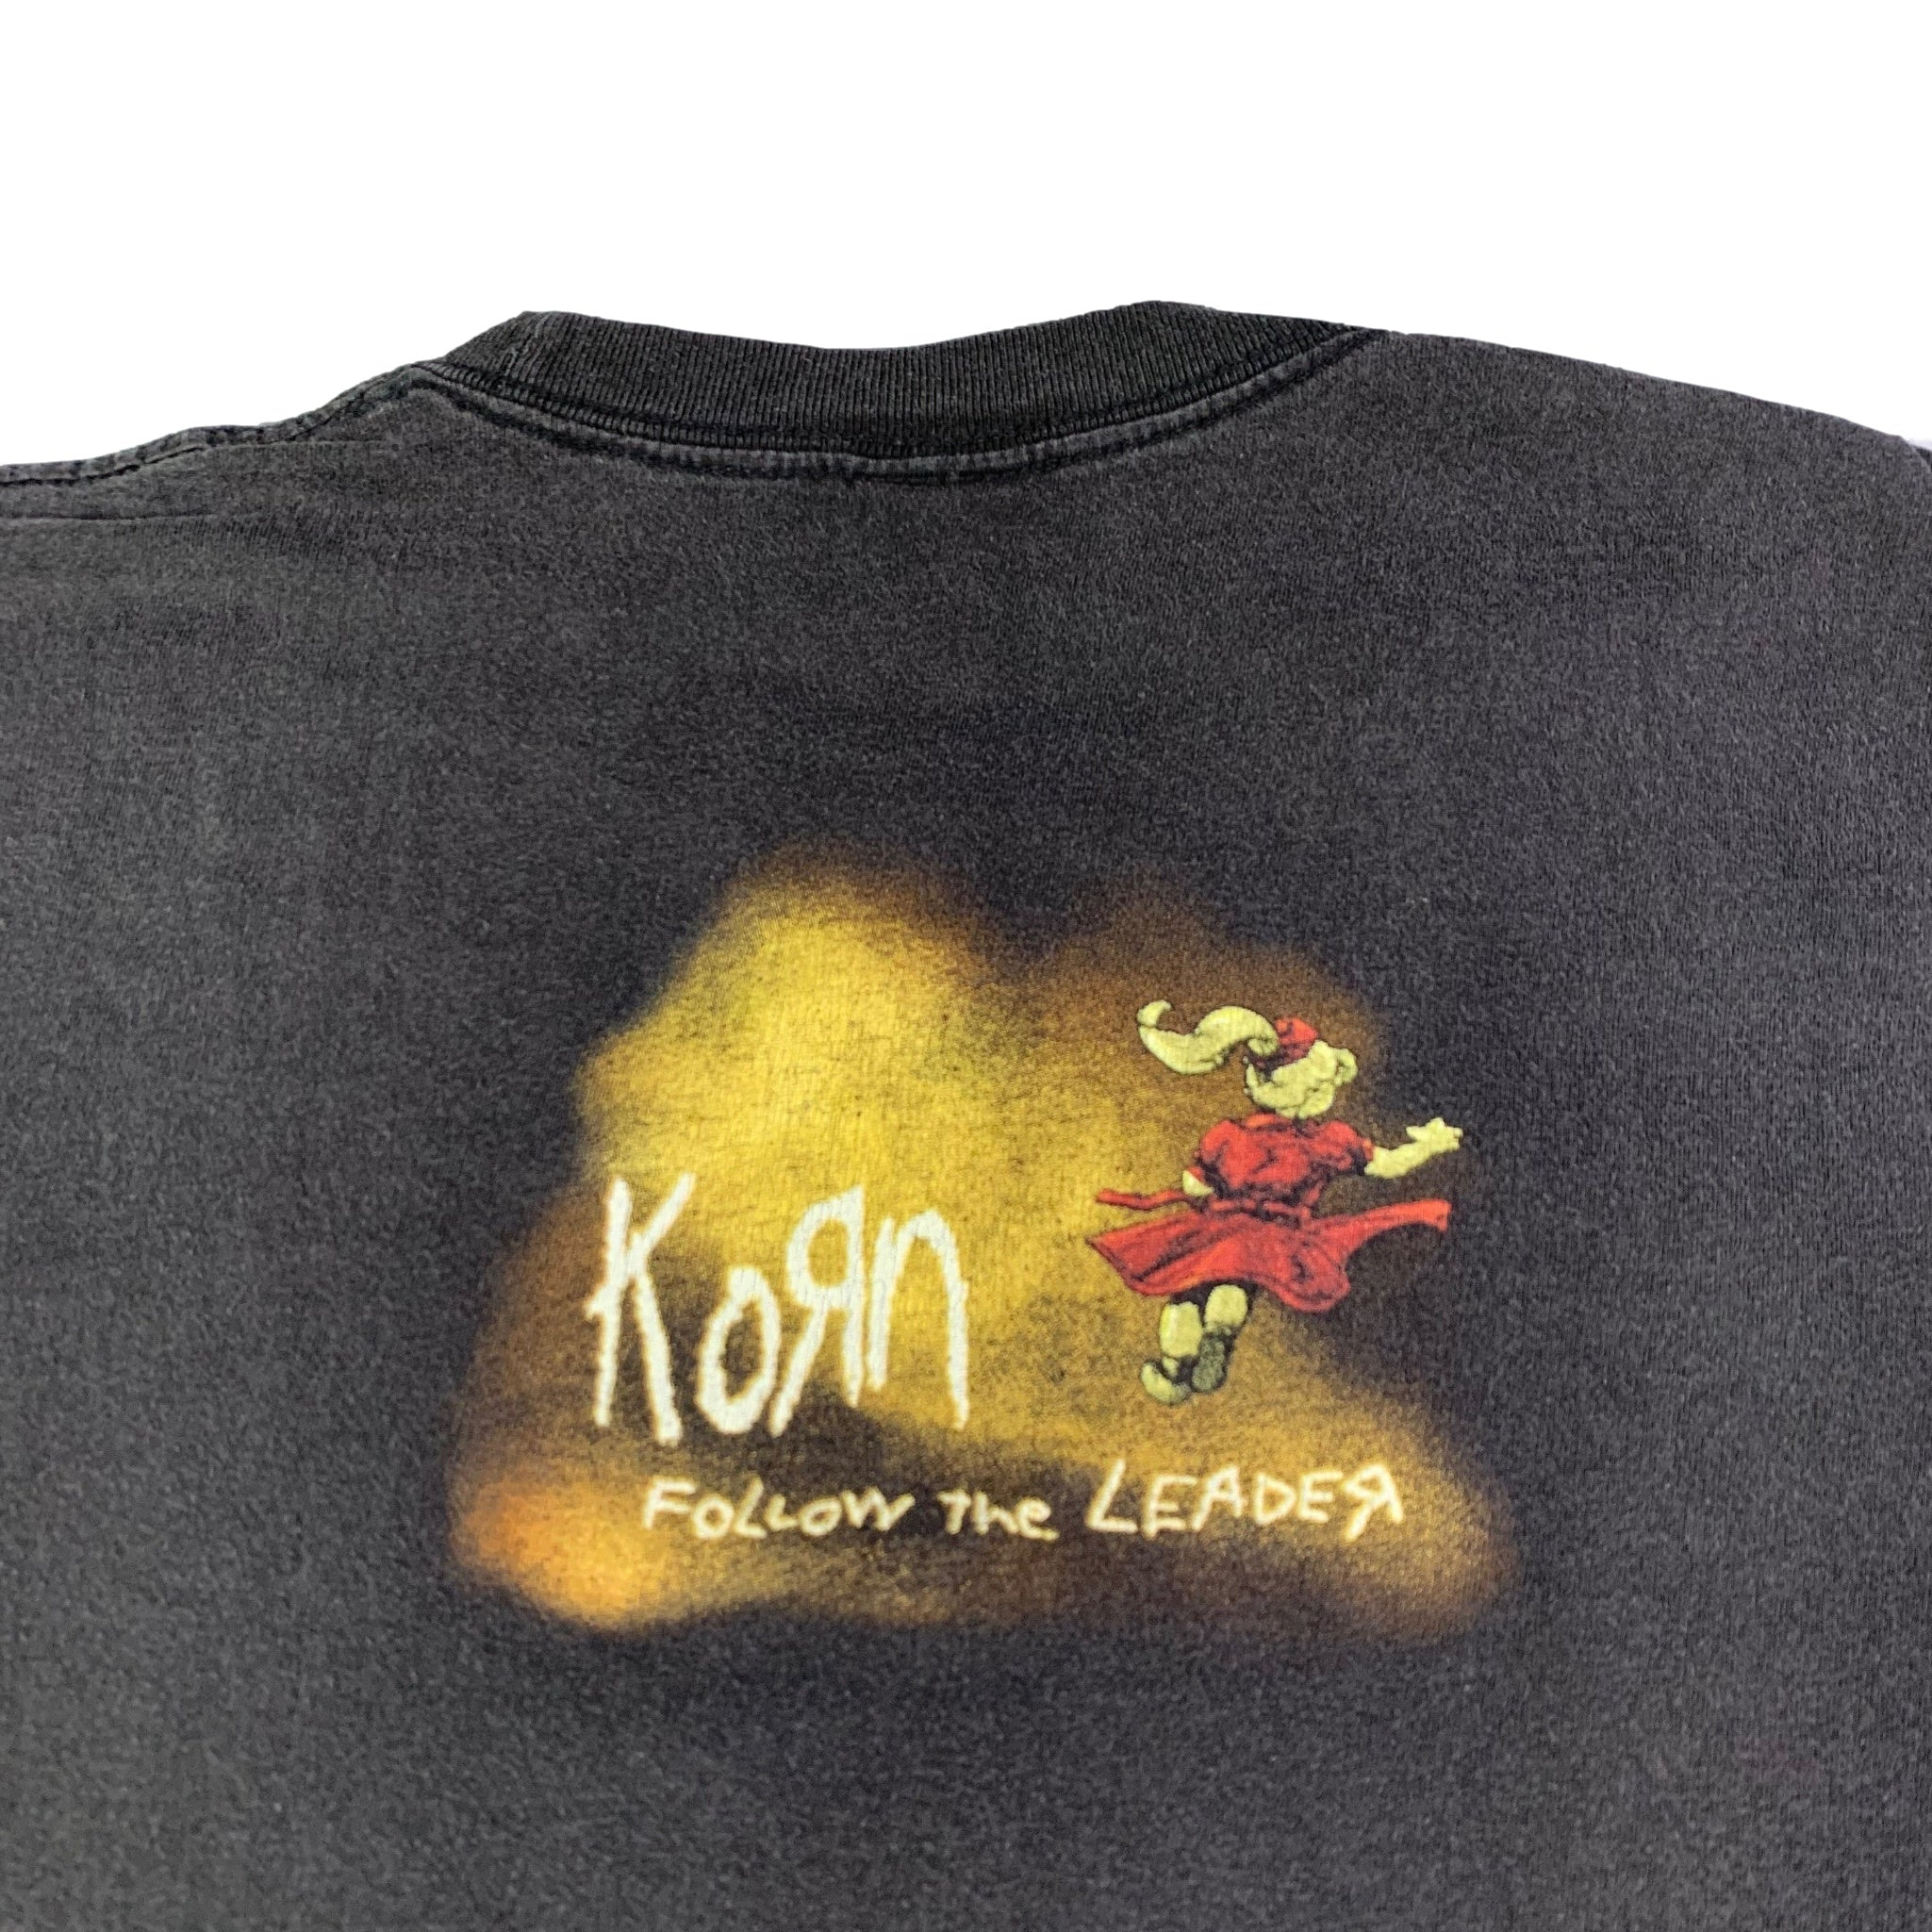 "Vintage Korn ""Follow The Leader"" T-Shirt"